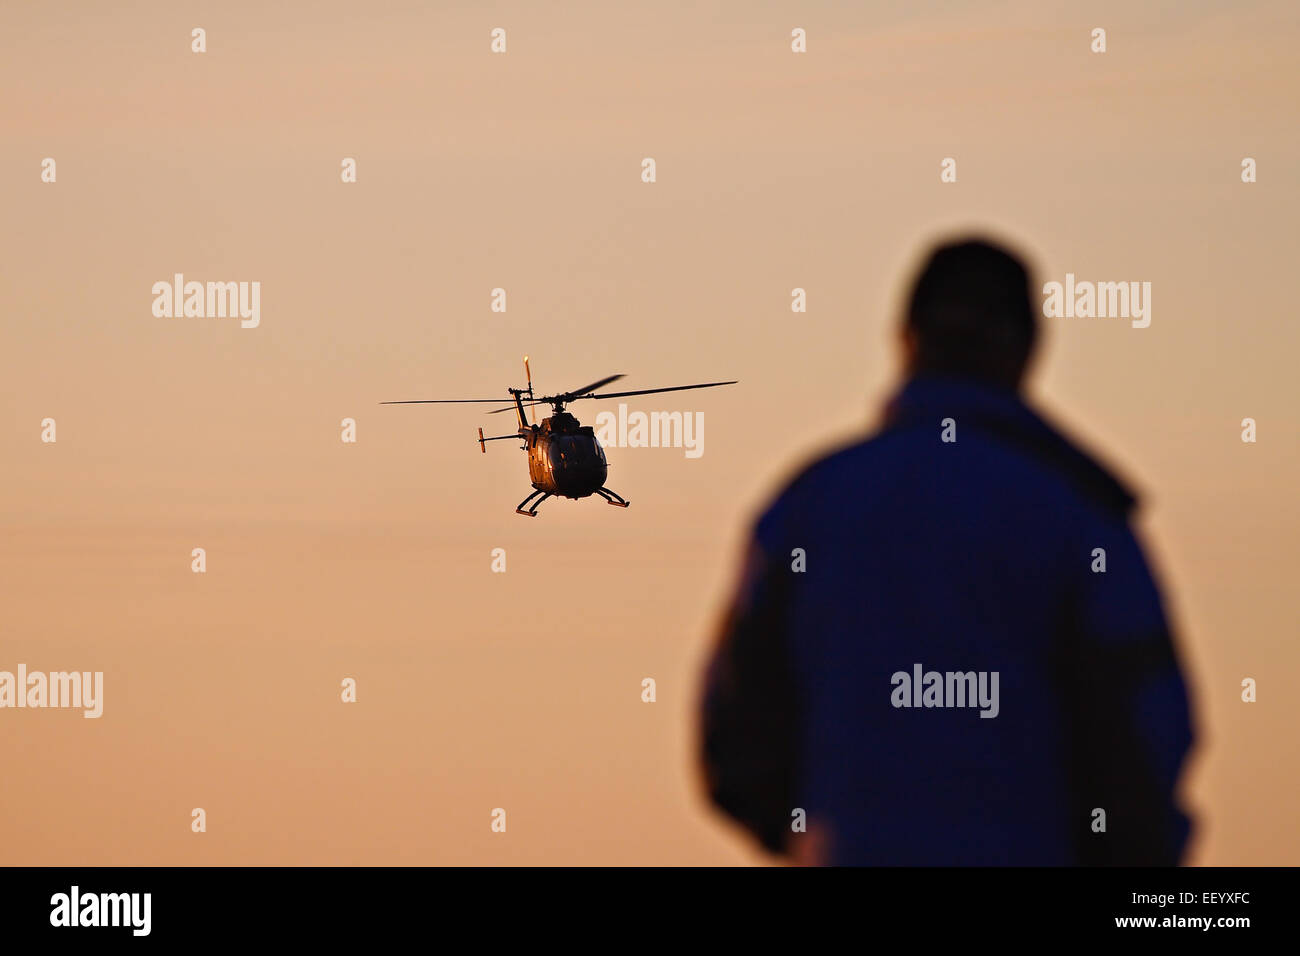 Helicopter and observers. - Stock Image